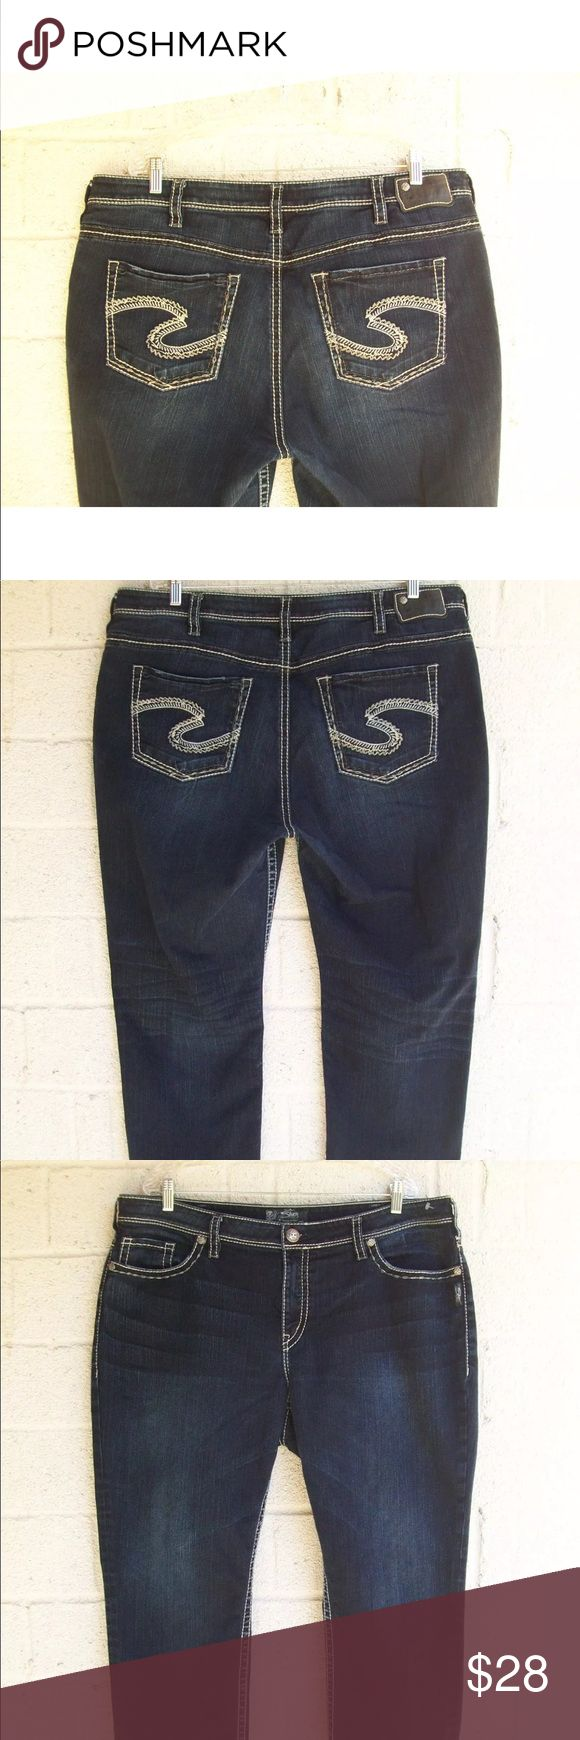 "Women's Silver Jeans plus size 22 Suki High Capri WOMEN'S SILVER JEANS, PRE OWNED IN EXCELLENT CONDITIONS, ORIGINAL SIZE 22, STYLE: SUKI HIGH CAPRI, STRETCH, ZIPPER FLY, 75% COTTON 25% POLYESTER, BLUE DENIM. ACTUAL WAIST LAYING FLAT 21"", FRONT RISE 11"", BACK RISE 19"", ACTUAL INSEAM 25"", LENGHT 37"". LEG OPENING AT THE BOTTOM 8"". Silver Jeans Jeans Ankle & Cropped"